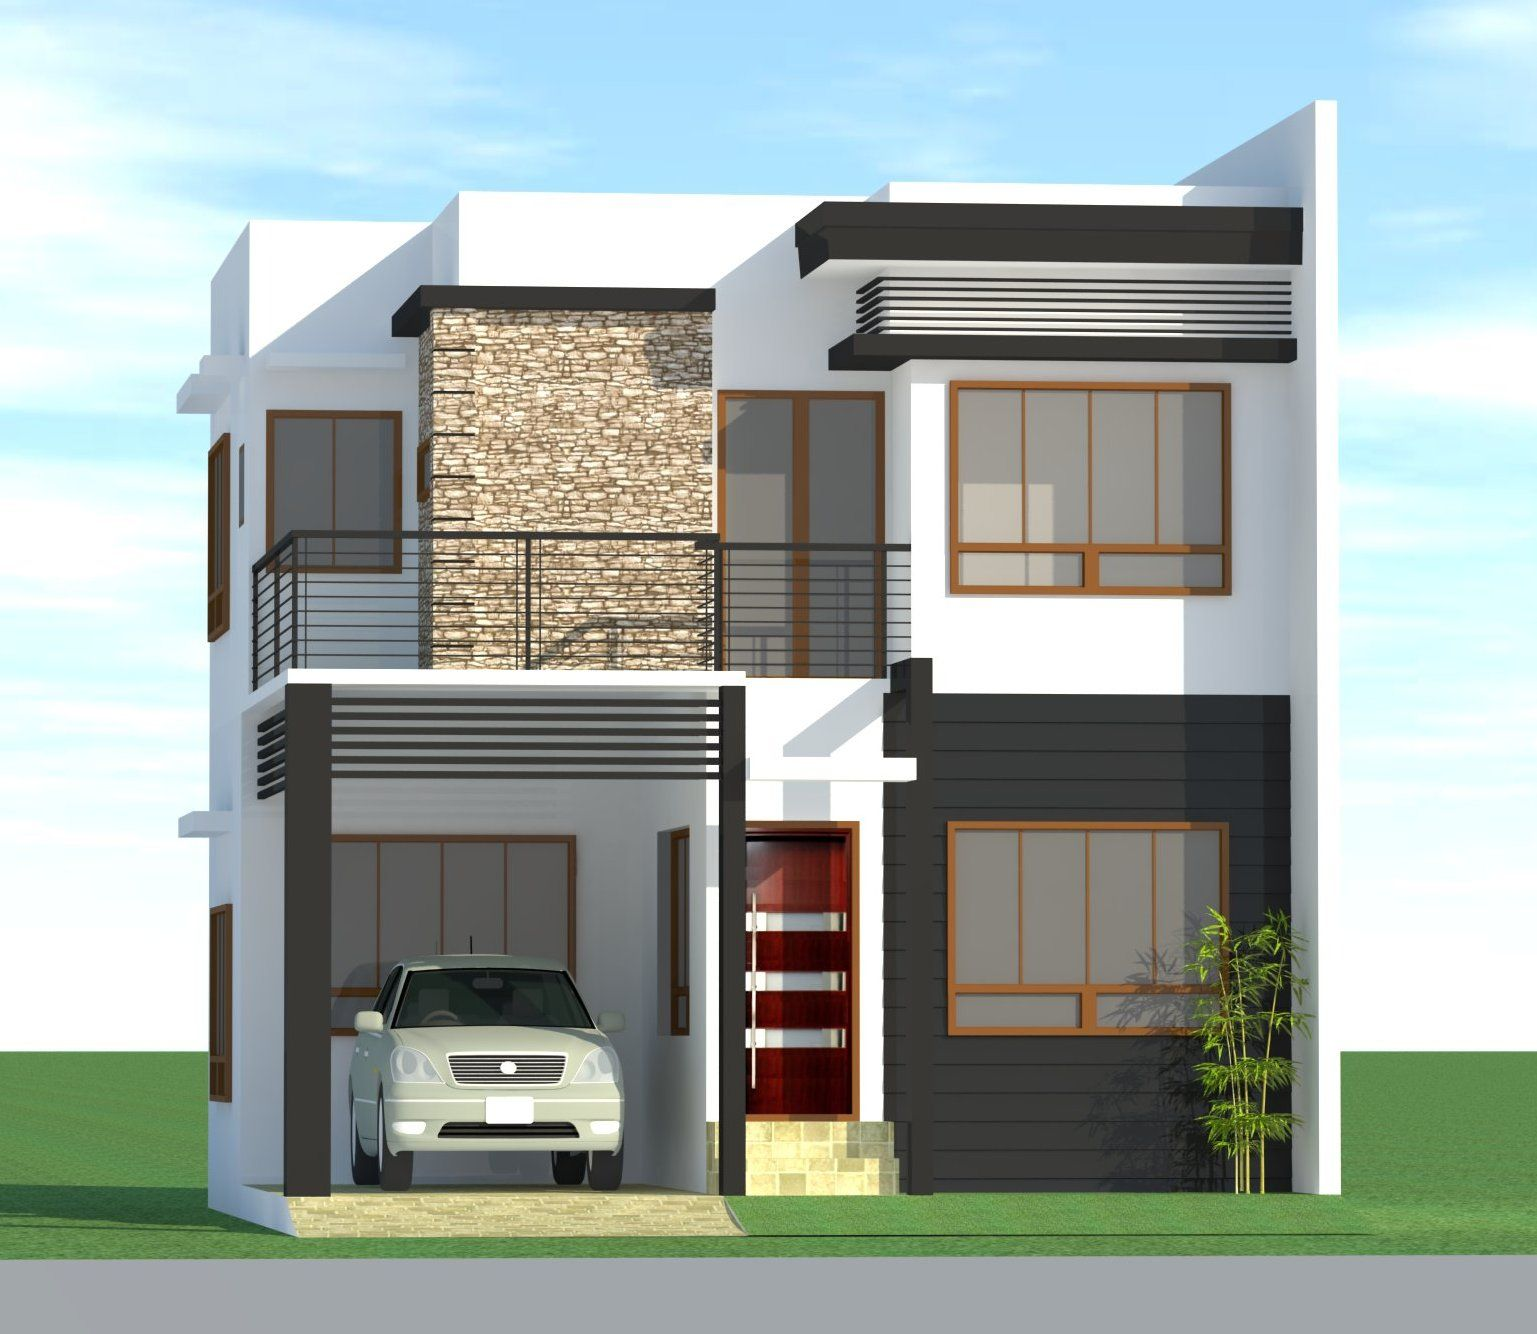 Philippines house design images 3 home design ideas for Front design of small house